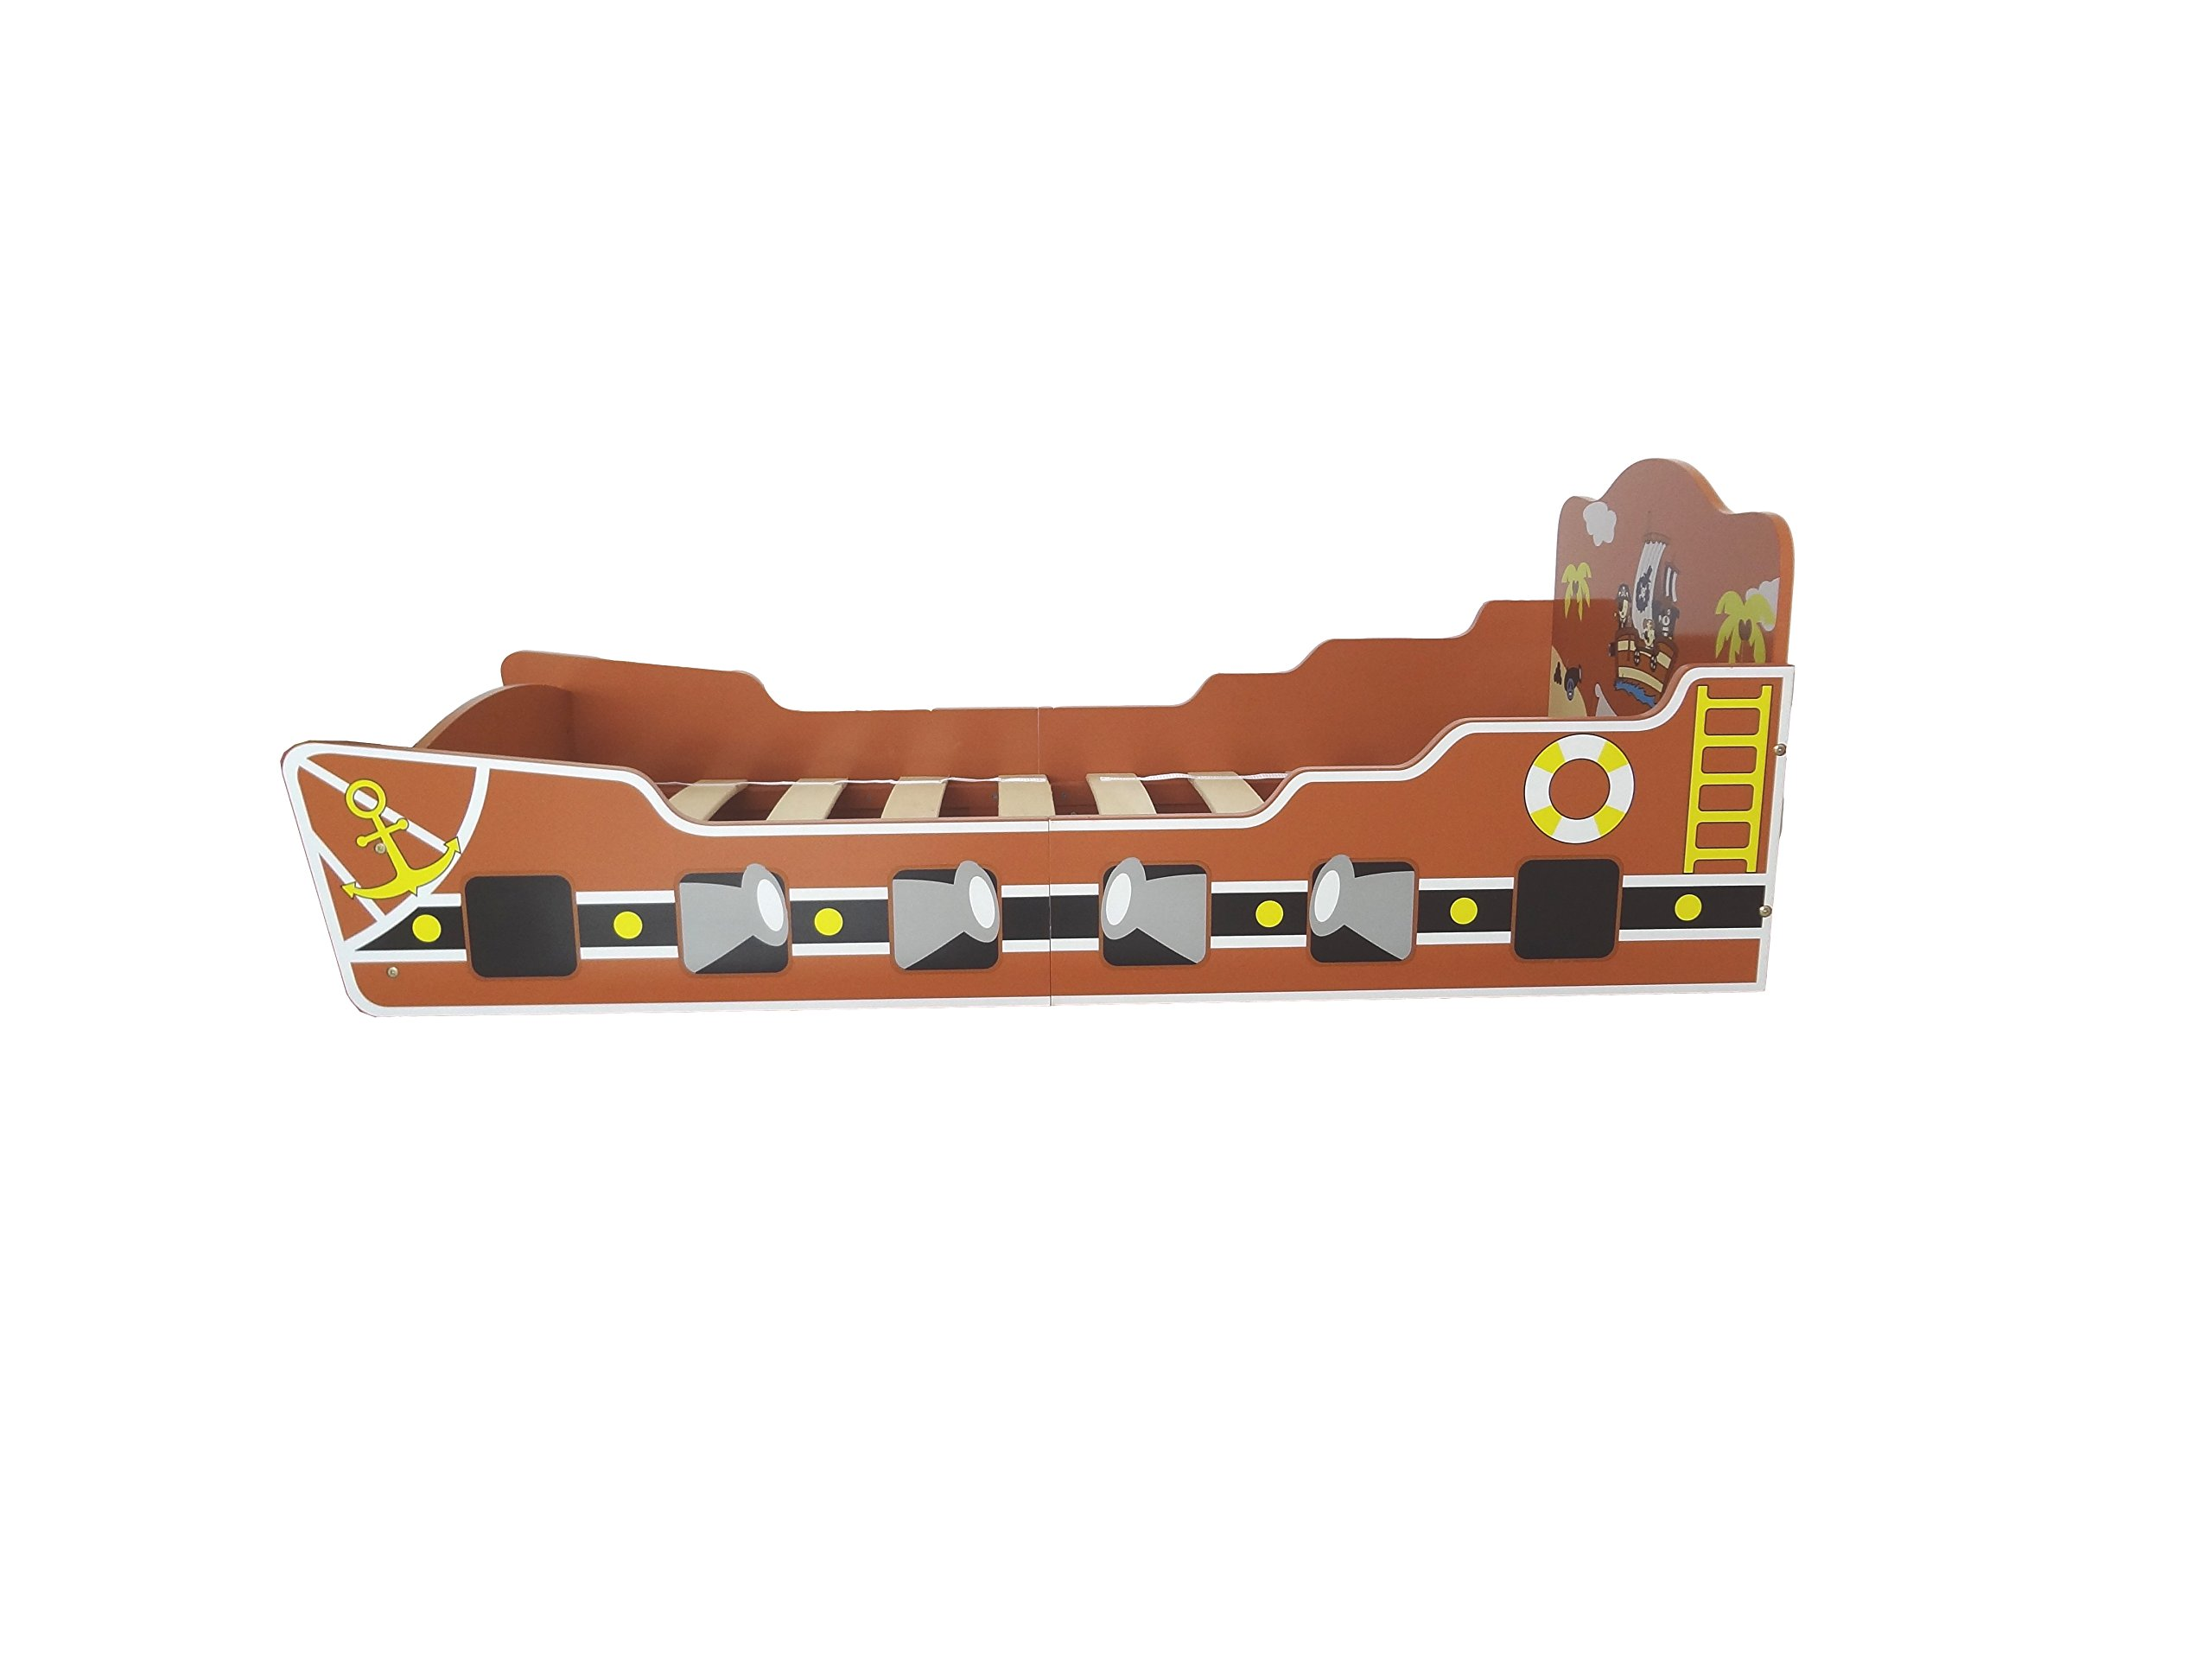 Kiddi Style Children's Pirate Ship/Boat Wooden Junior Bed Kiddi Style Fun pirate themed boat / ship Junior Bed Wood - Fun pirate themed set Easy to assemble 2